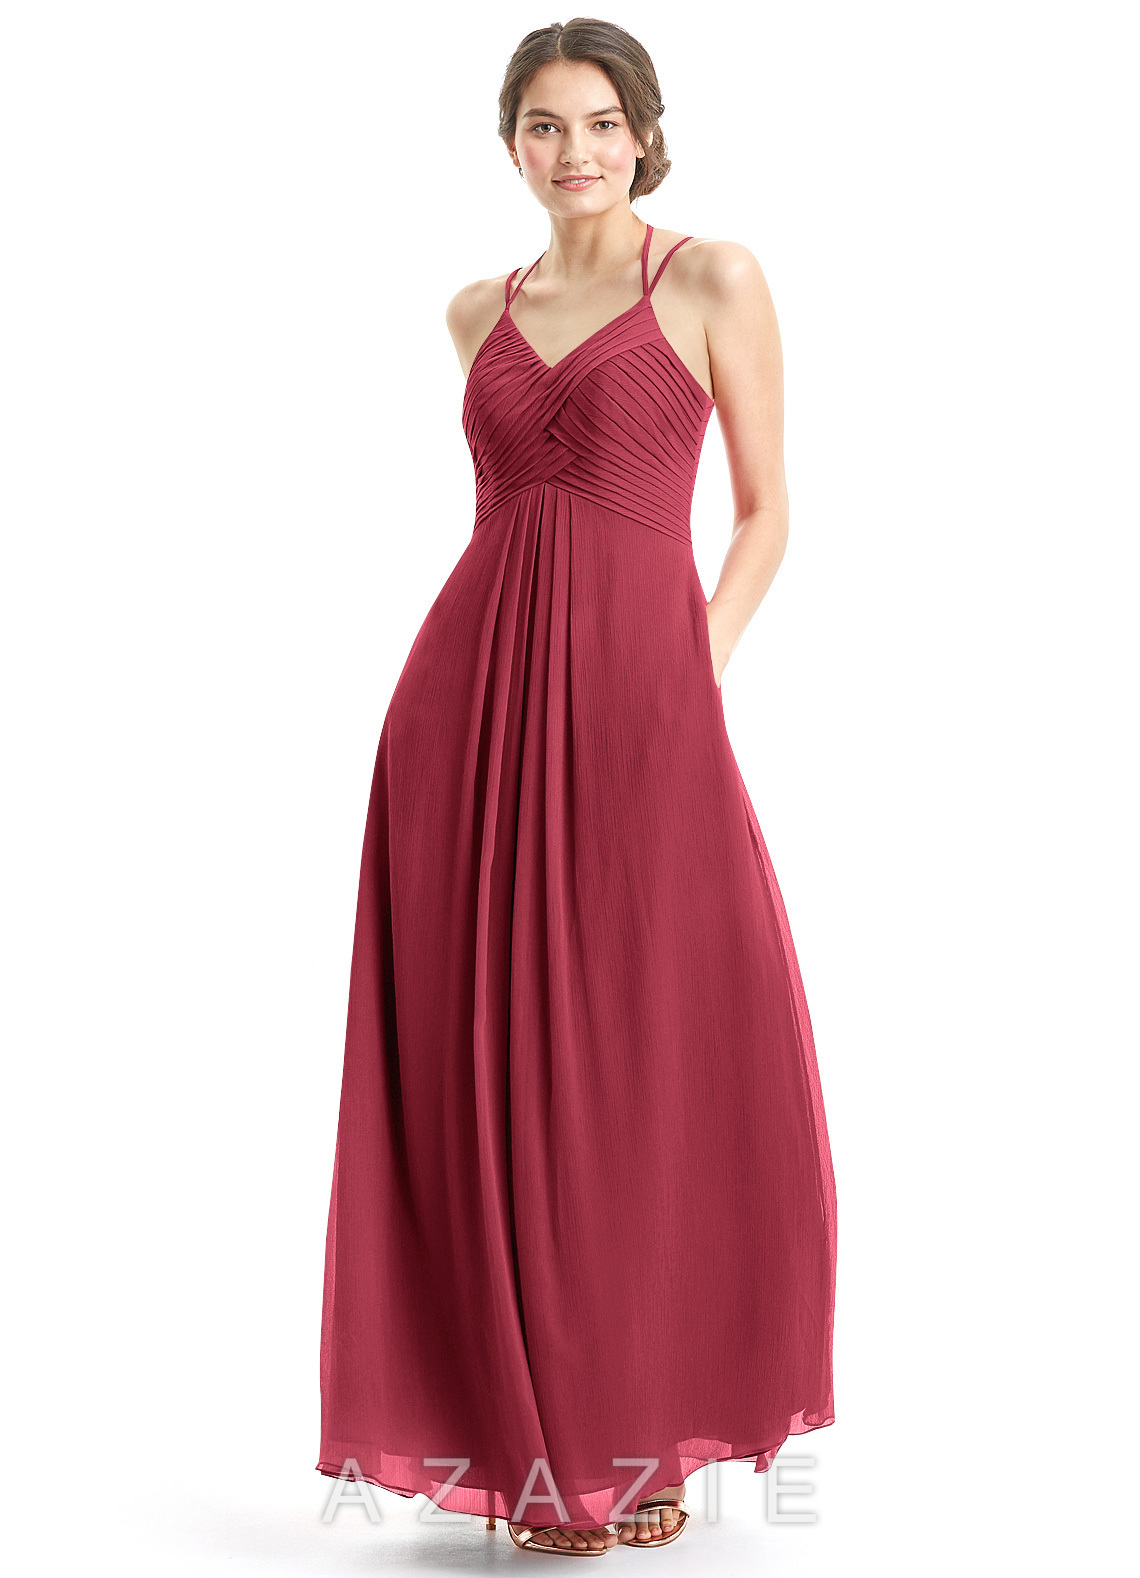 115da3abd9bad Azazie Eden Bridesmaid Dress | Azazie